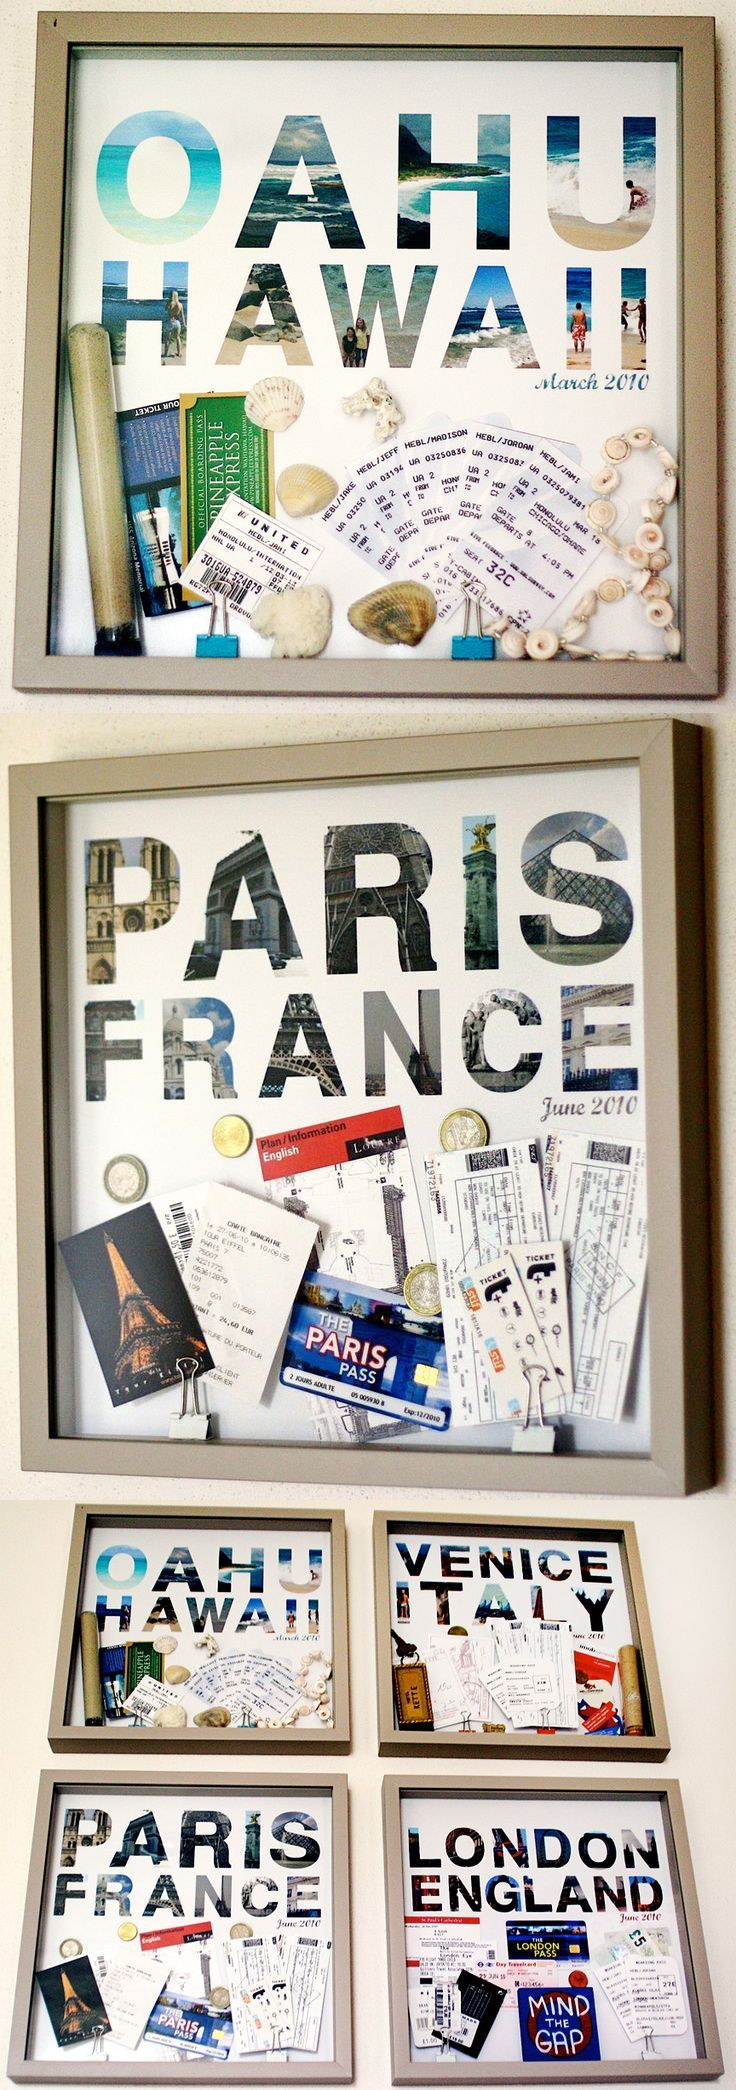 Love this idea for travel memories